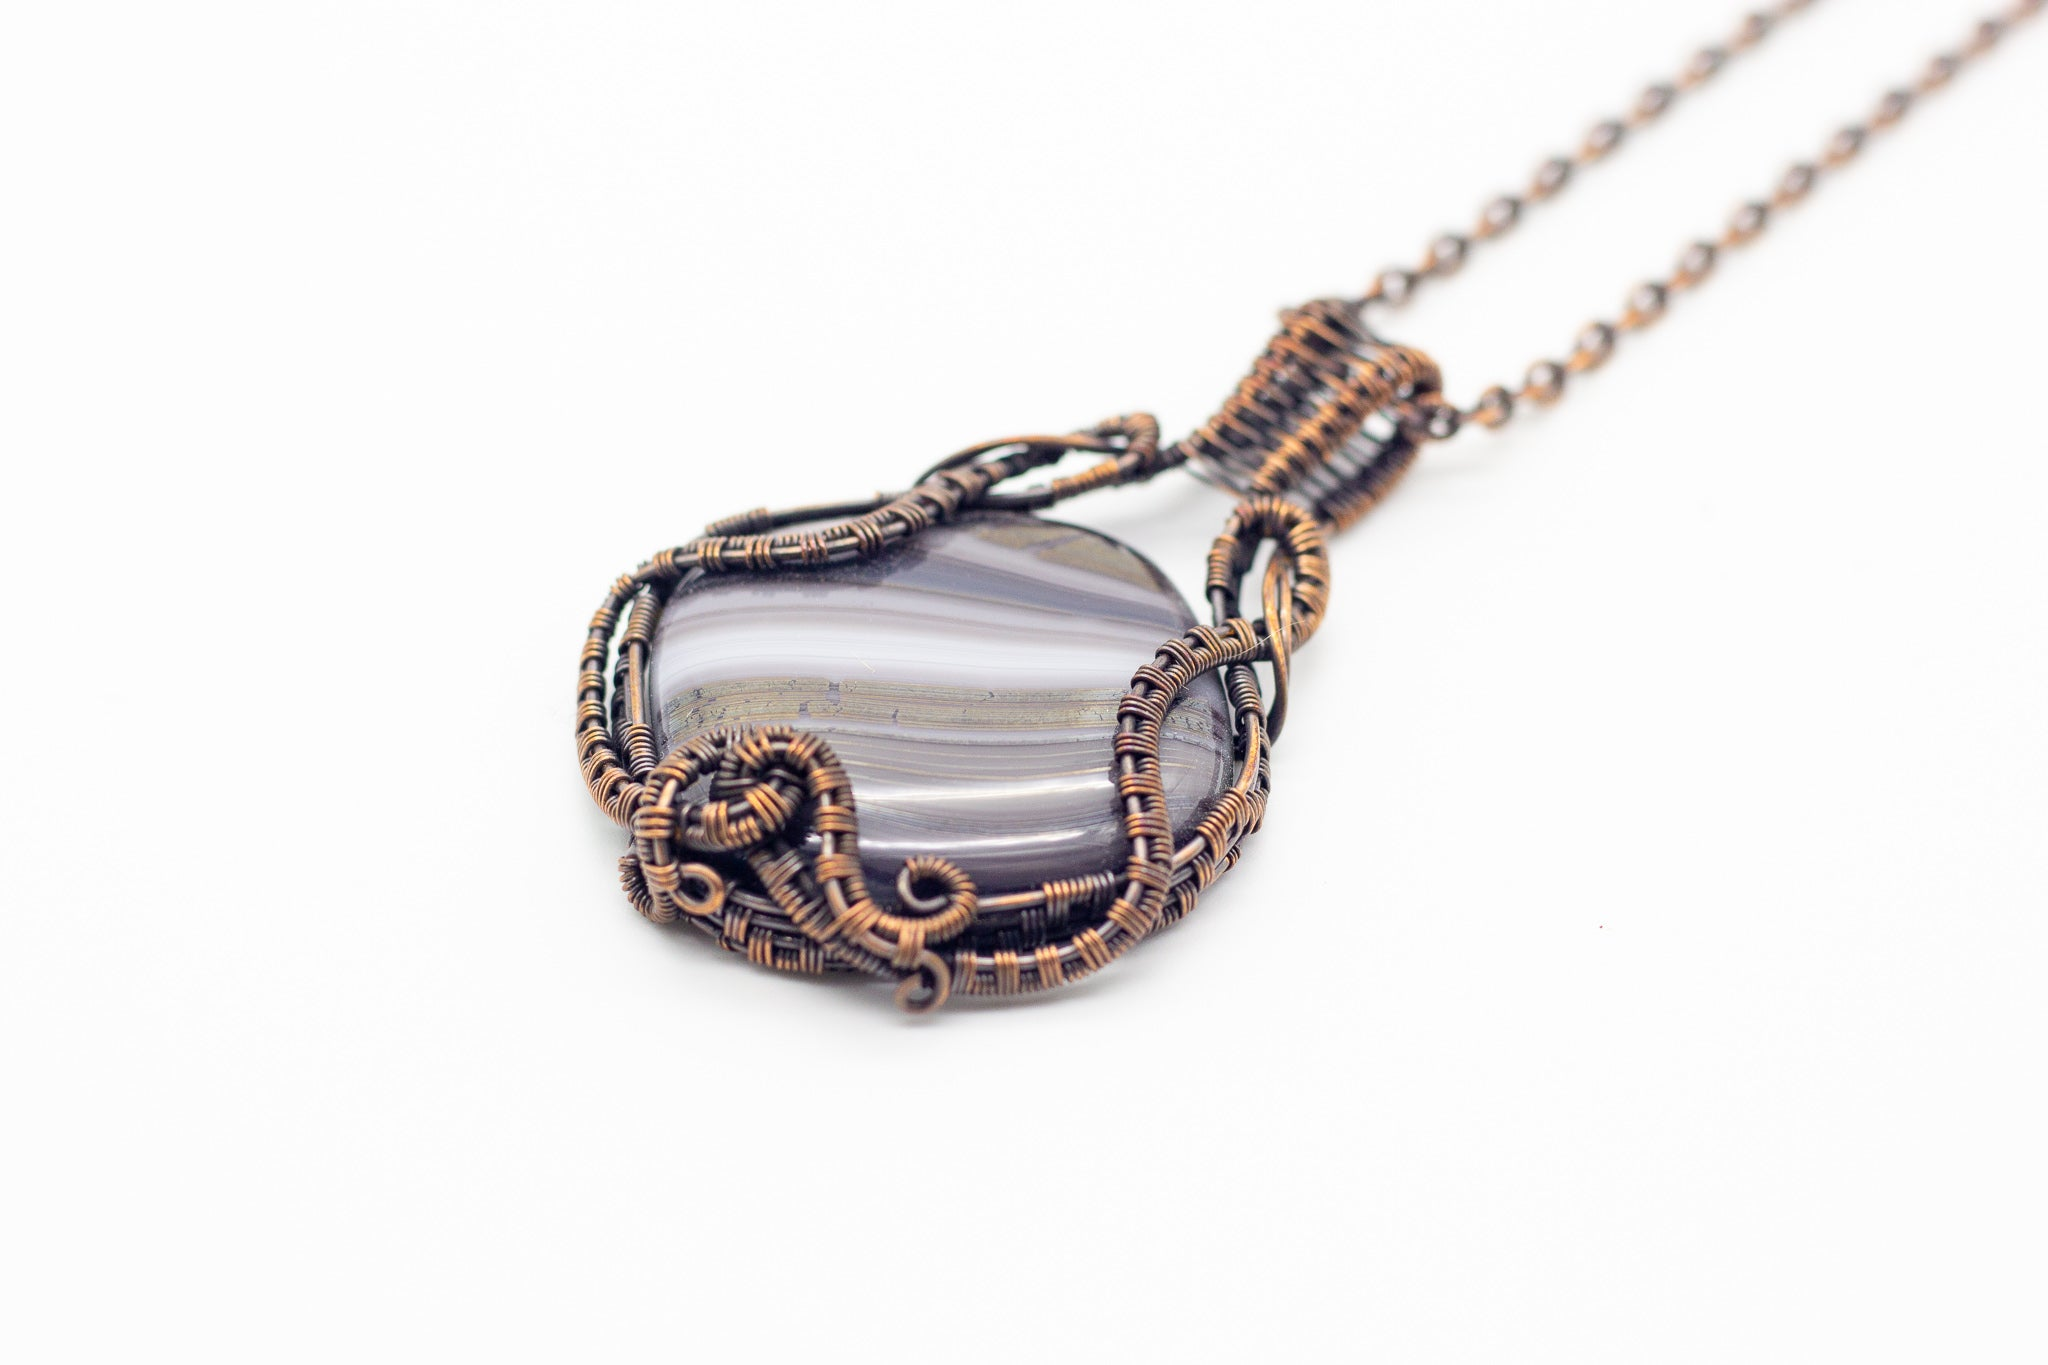 streaked-grey-statement-pendant-copper-wire-wrapping-nymph-in-the-woods-jewelry